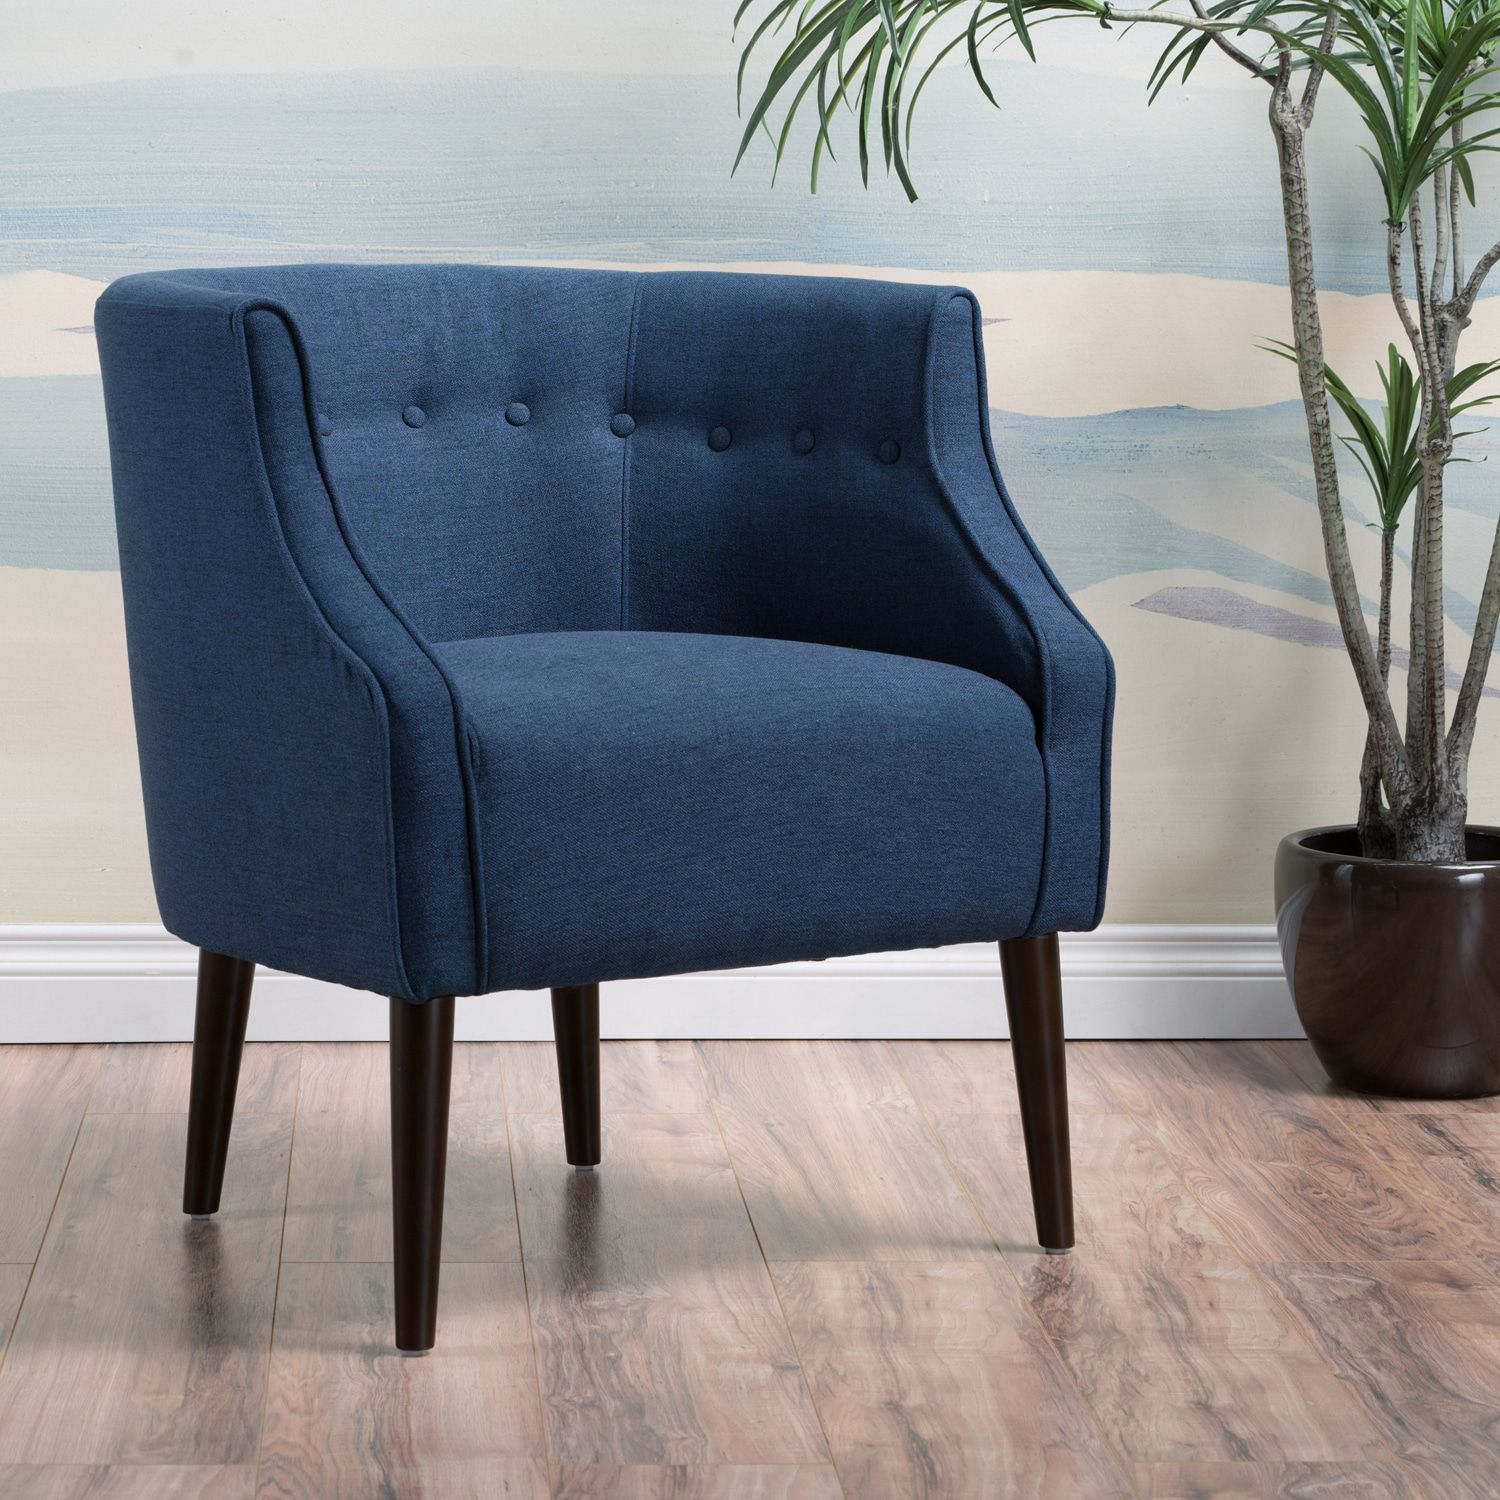 Merveilleux Bethany Navy Tufted Chair